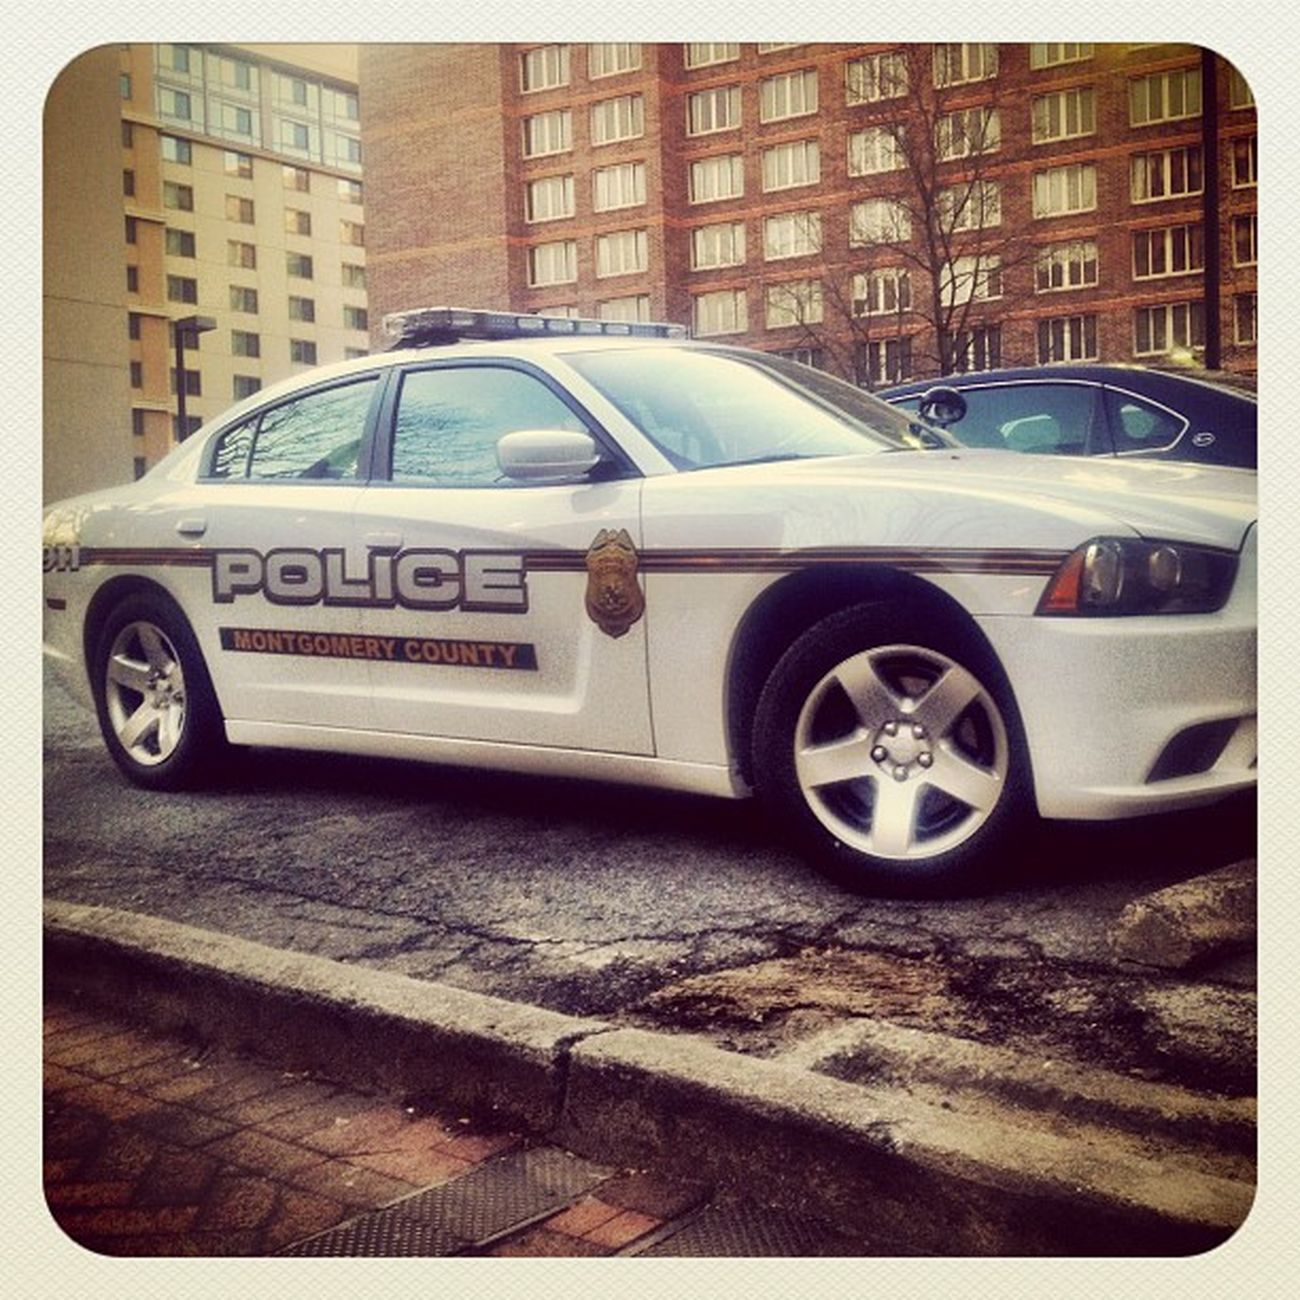 I am always amazed at the number of different Police we have in the DC area. IPhoneography Police Bethesda Charger Dodge Jomo Policecar Dodgecharger Patrolcar